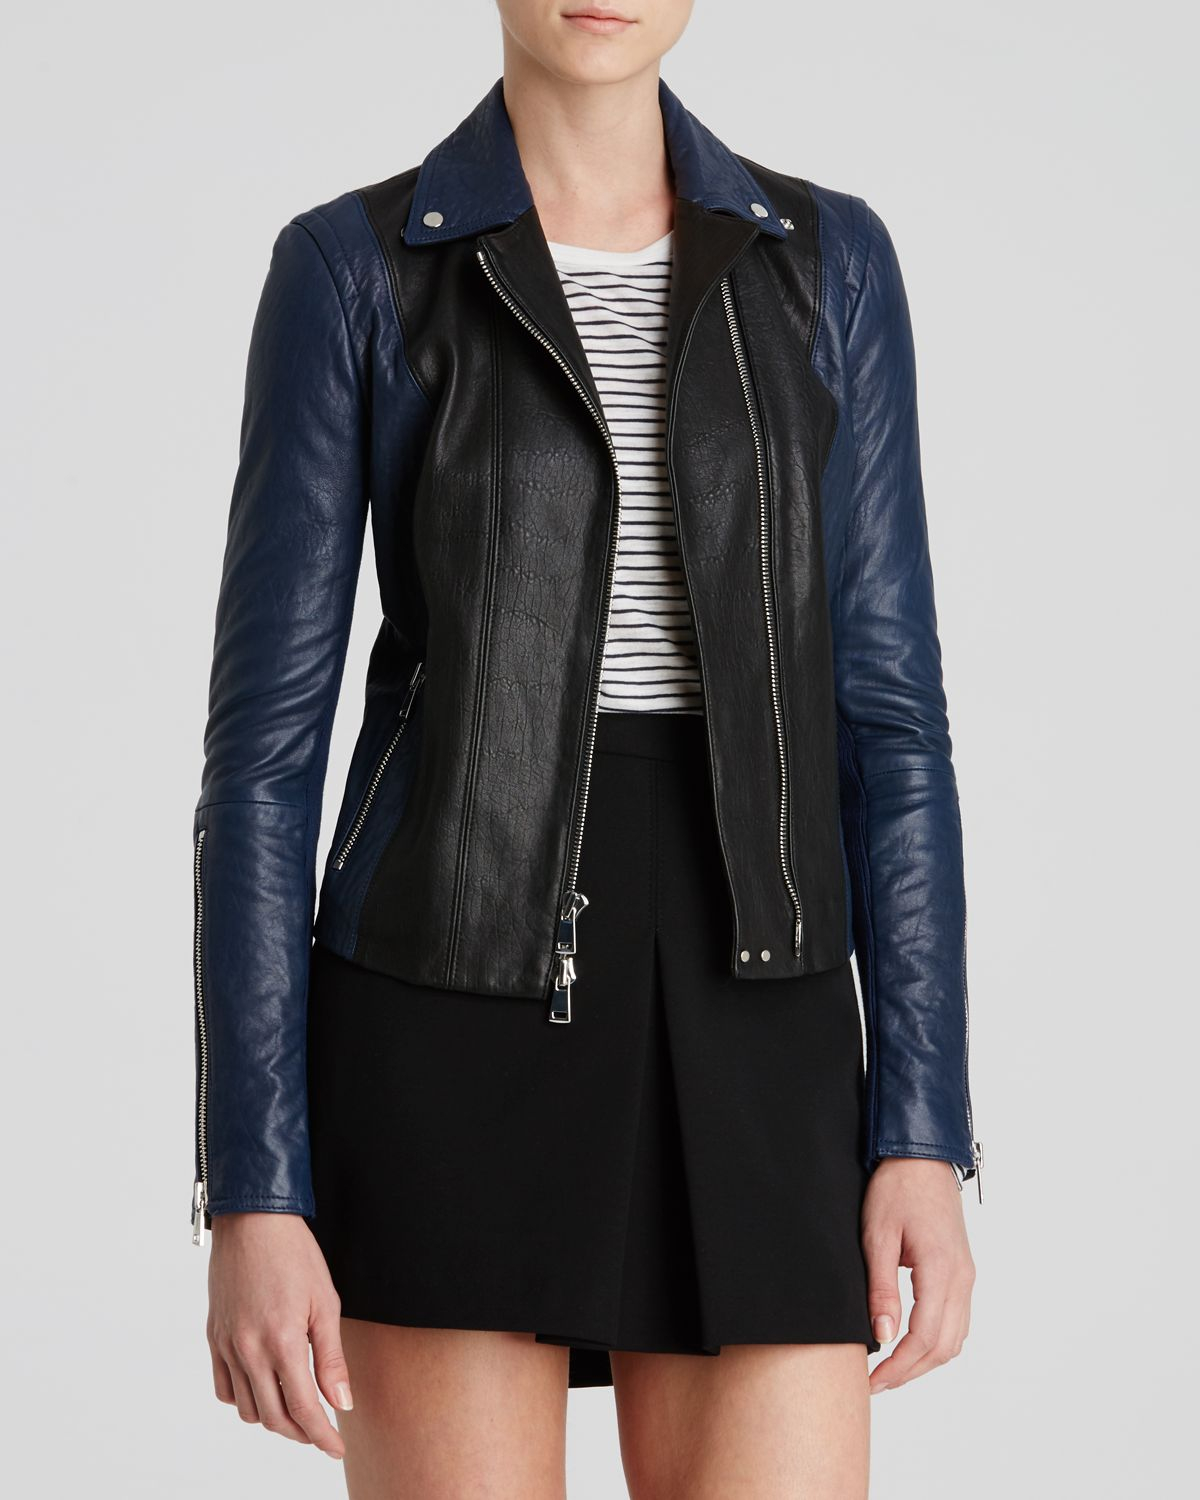 Black And Blue Leather Jacket | Outdoor Jacket